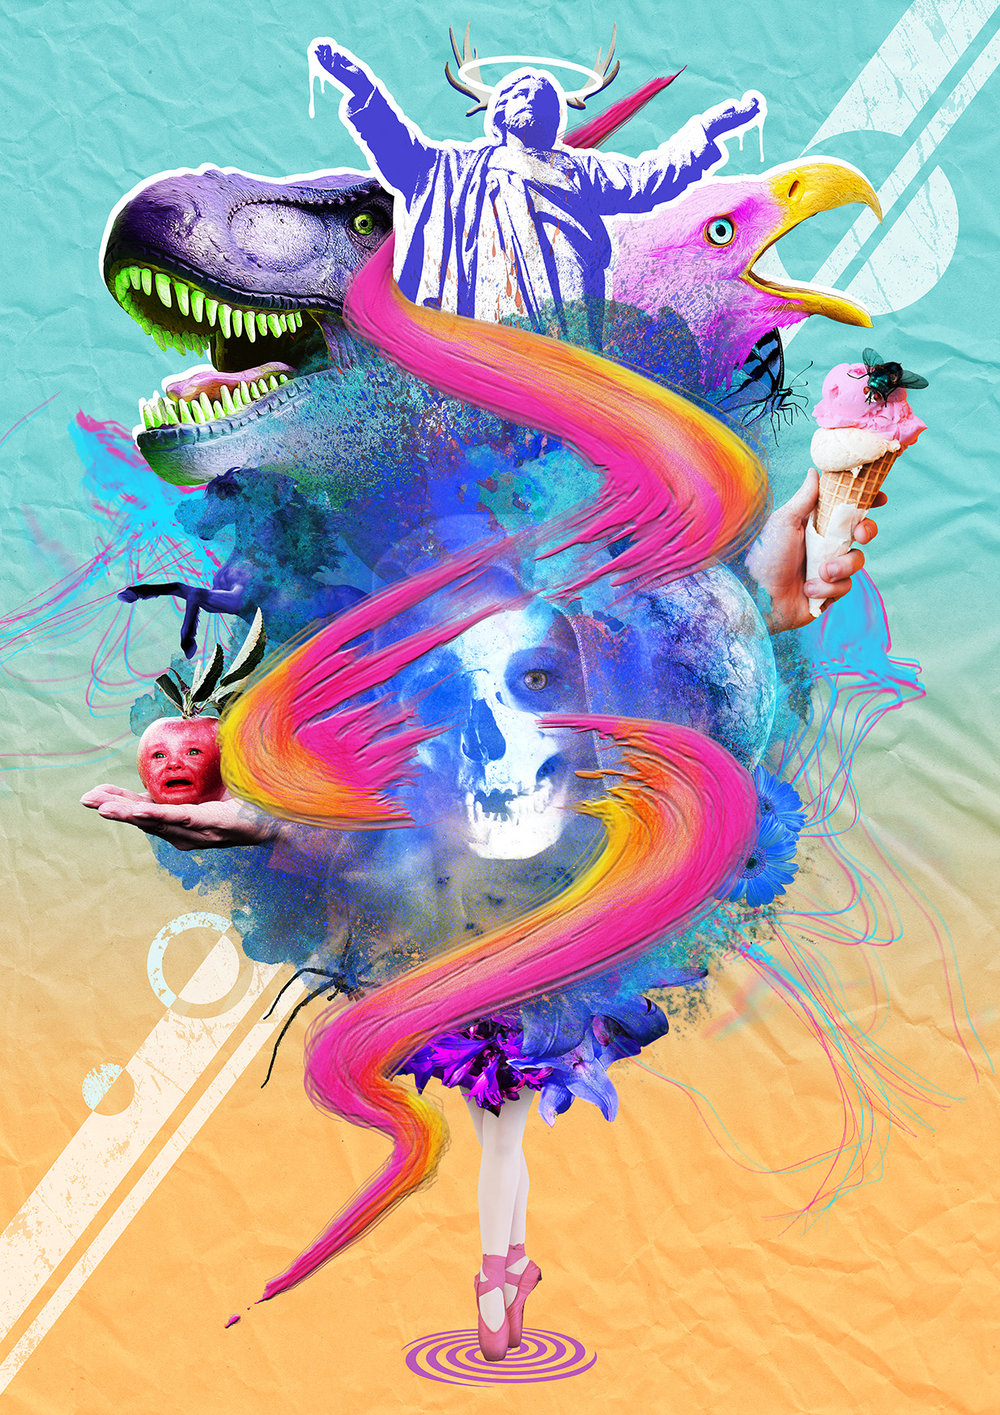 Collage experiment using stock images, original elements and various digital art techniques.